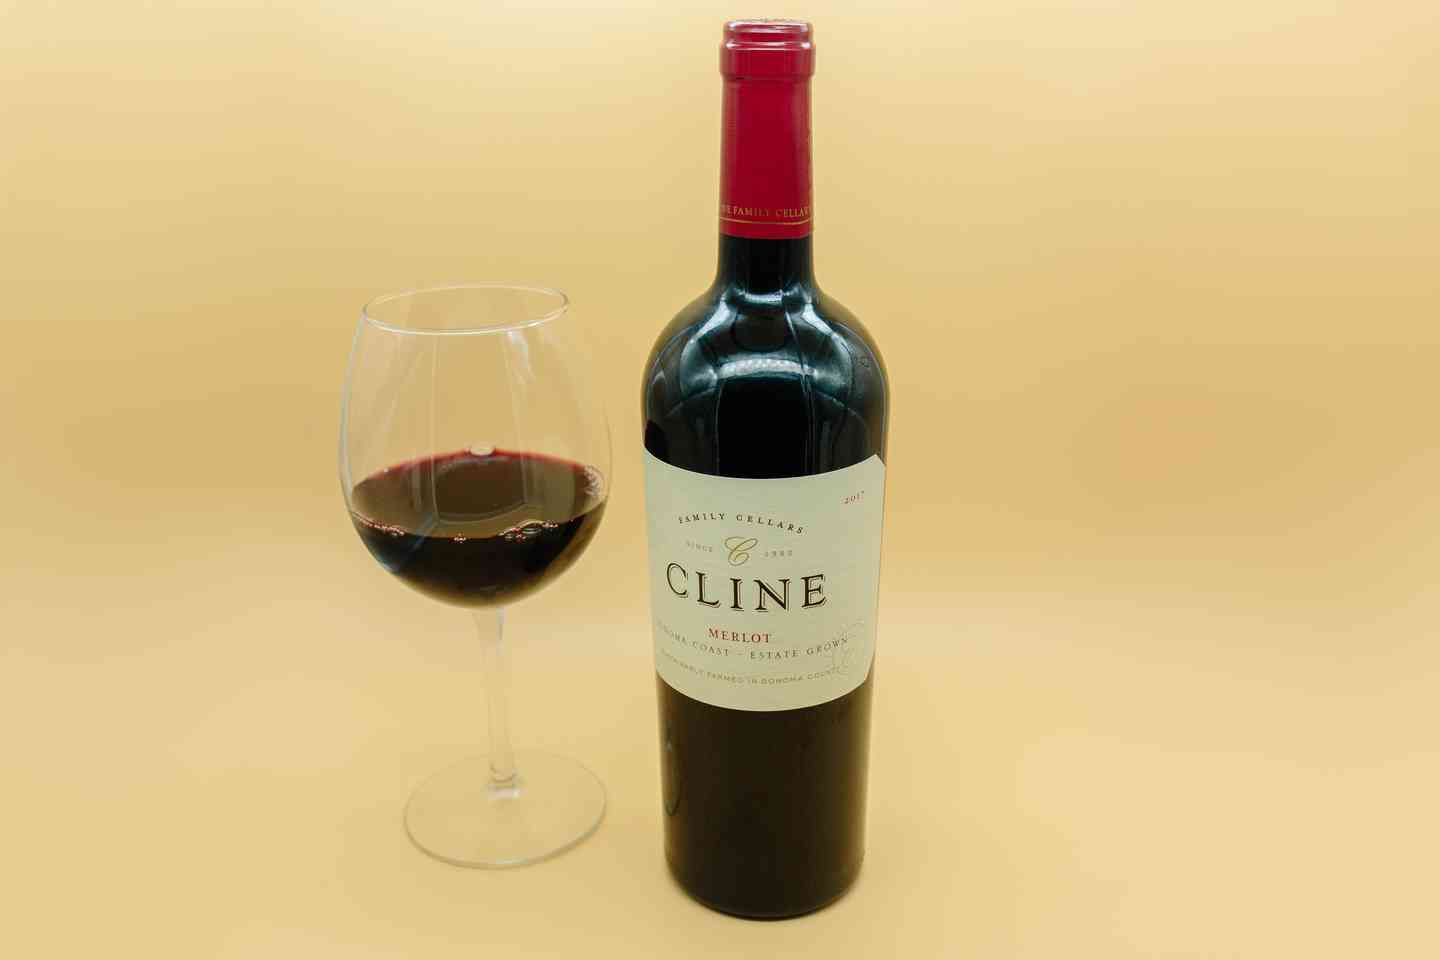 Cline Cellars Merlot Sonoma Coast